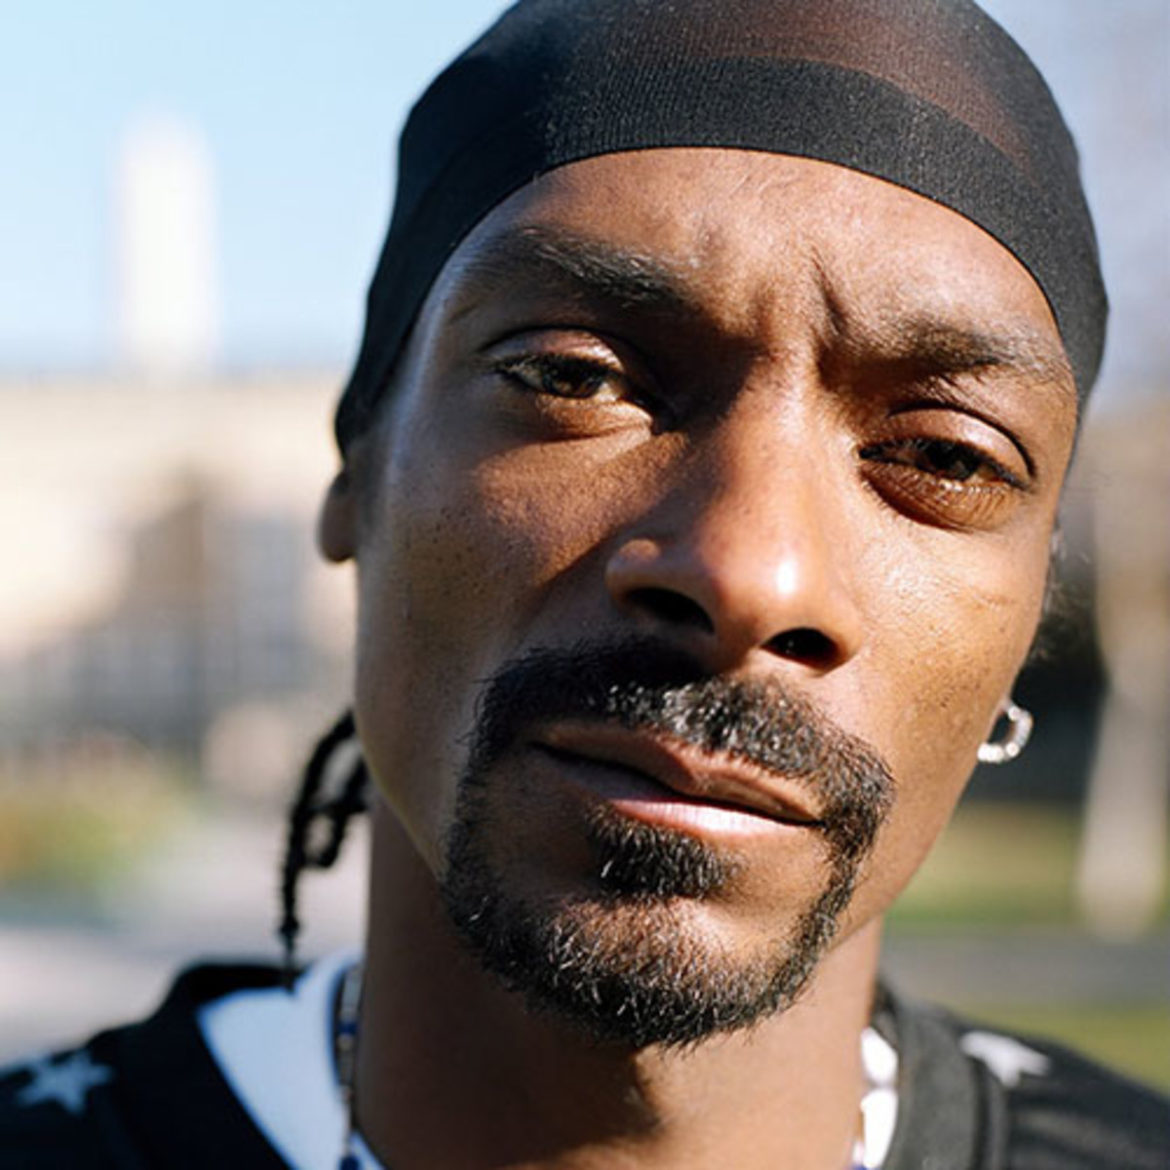 What do we know about Snoop Dogg?